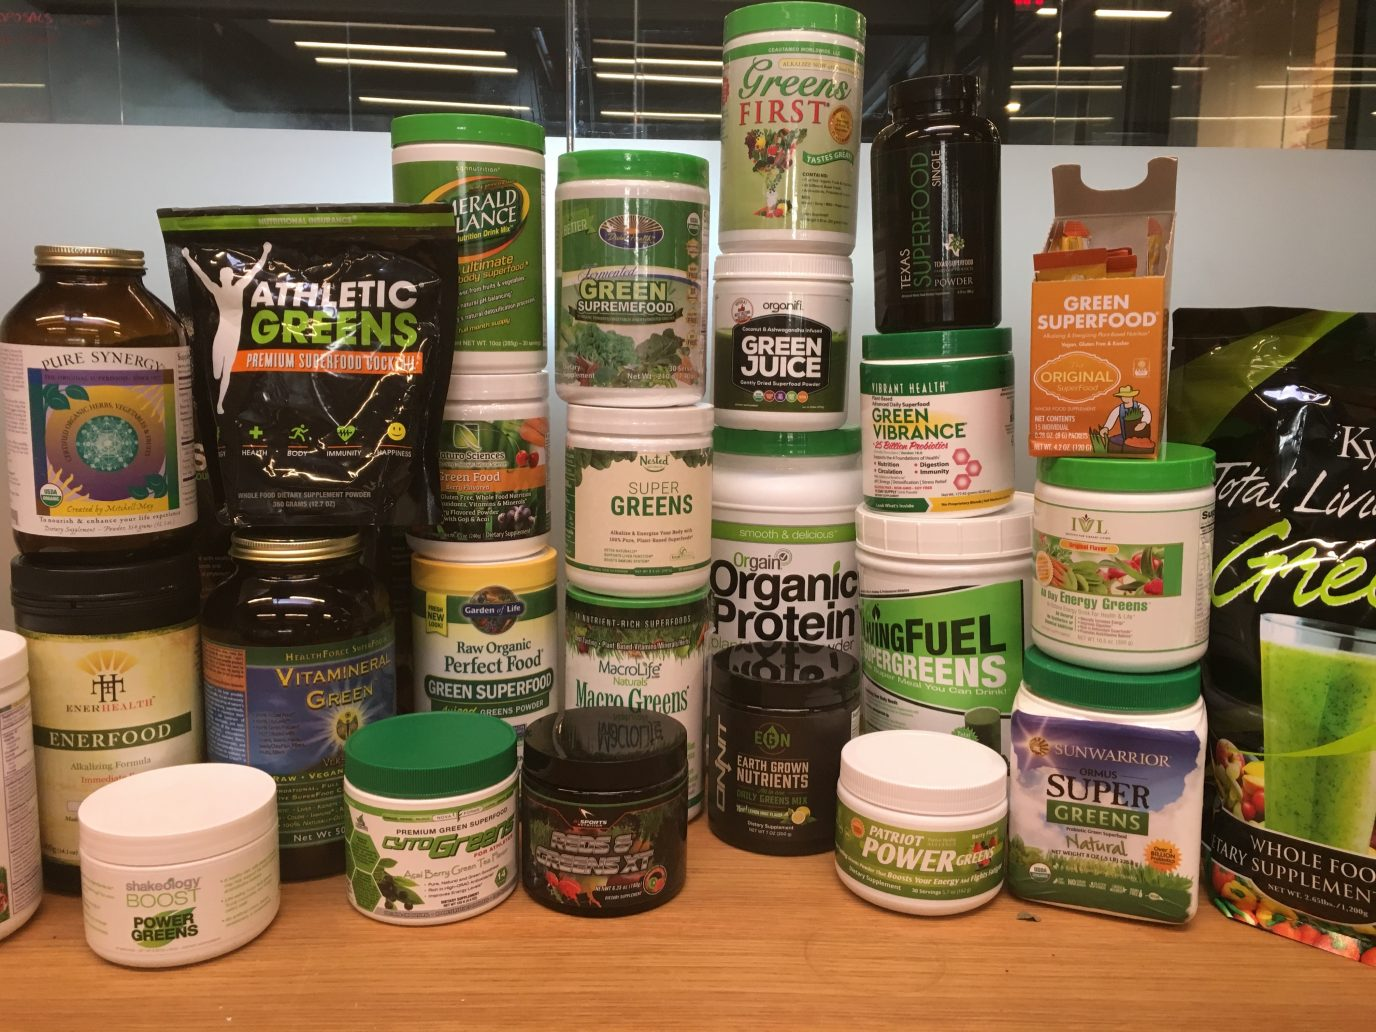 Green-Powders-Comparison-BAMN-Personal-Training-For-Women-Fitness-Coaching-Weight-Loss-Body-Sculpting-Strength-Training-Bamncoach